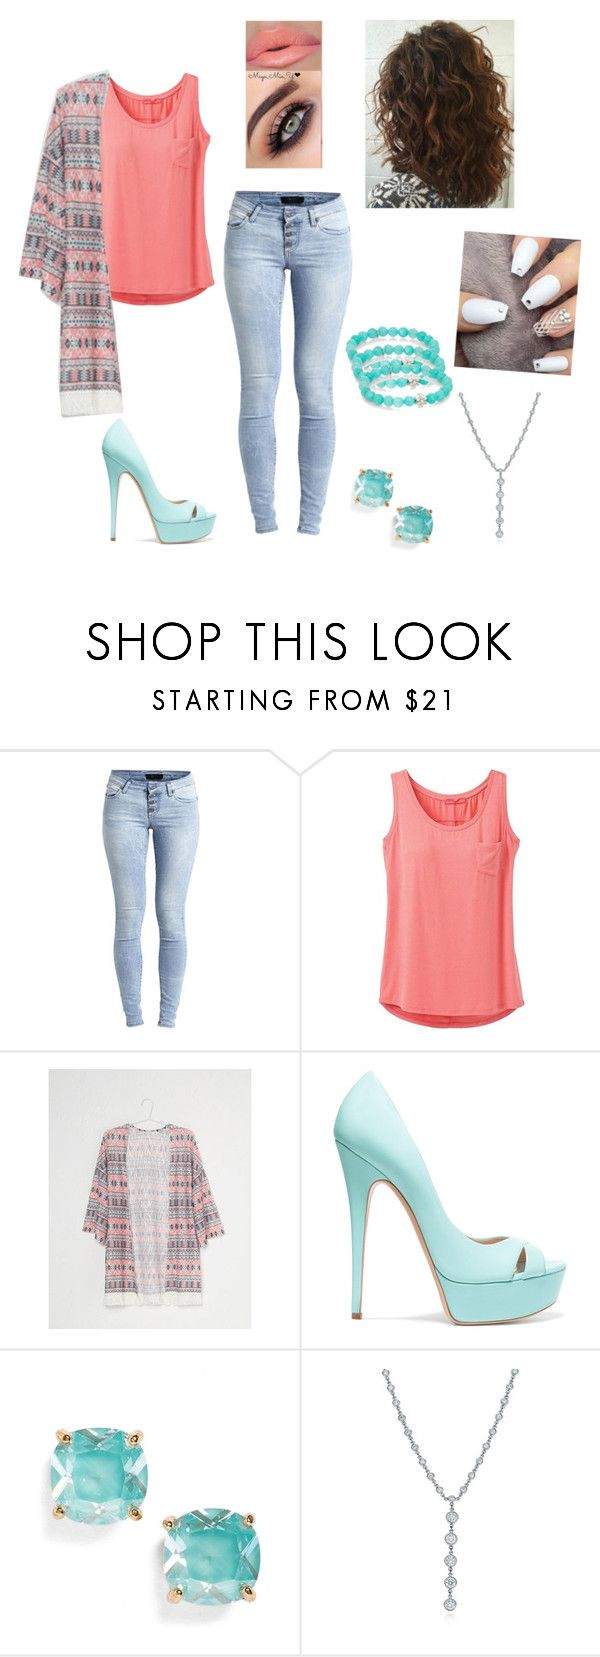 """""""Feeling Pretty"""" by rainleigh911 on Polyvore featuring Object Collectors Item, prAna, Casadei, Kate Spade, Tiffany & Co. and Anzie"""